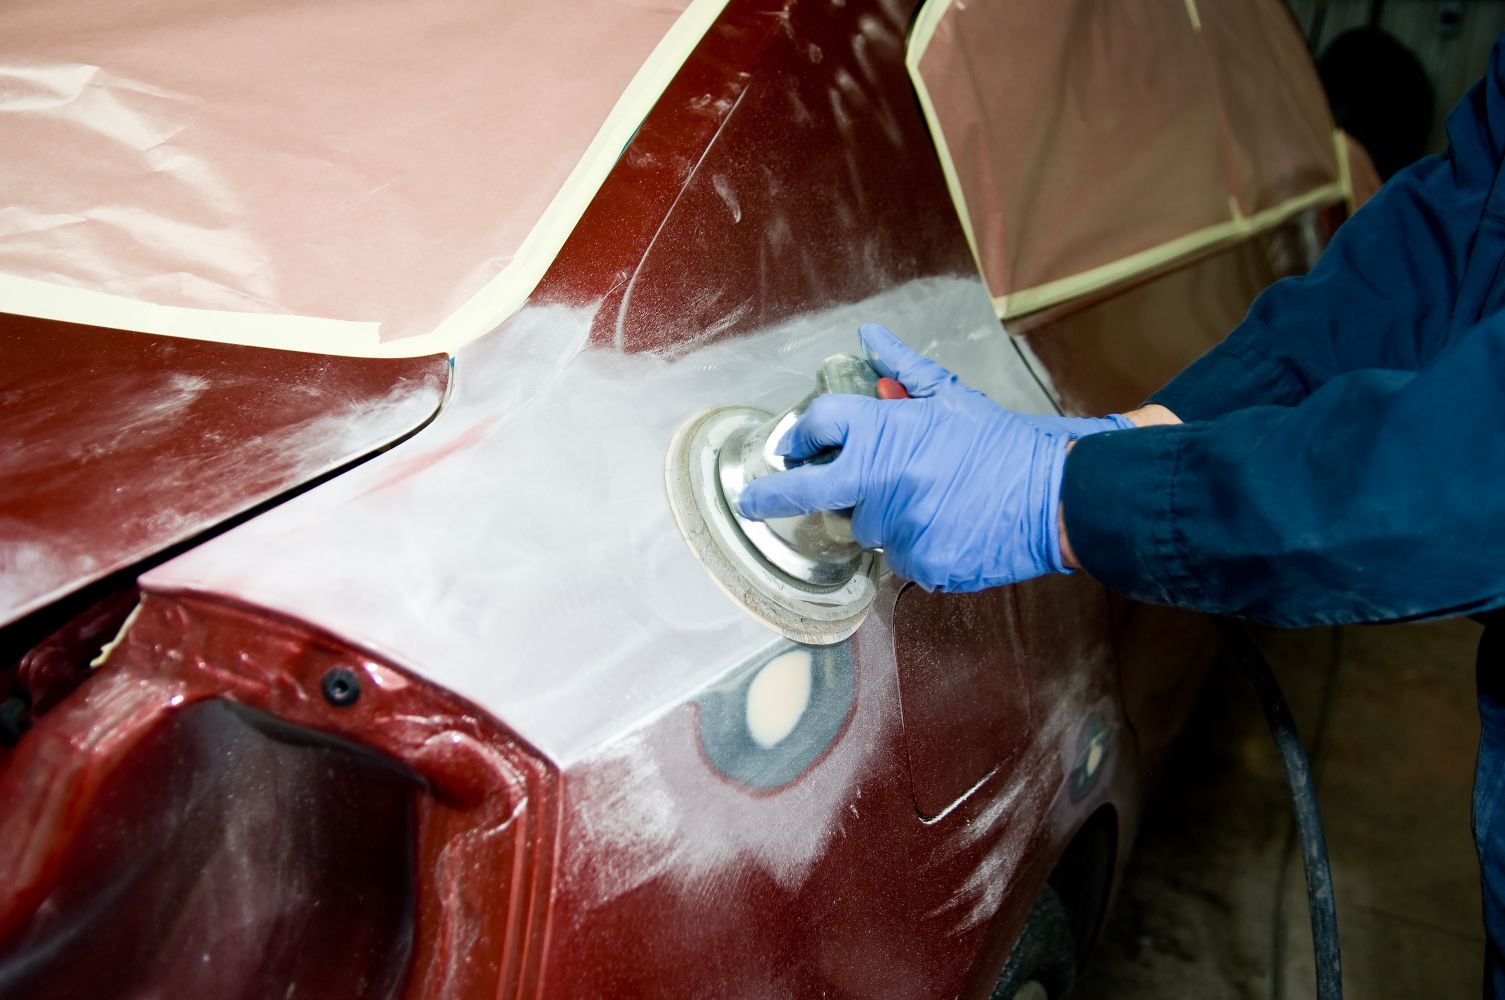 Professional working on car repairs in Shelbina, MO